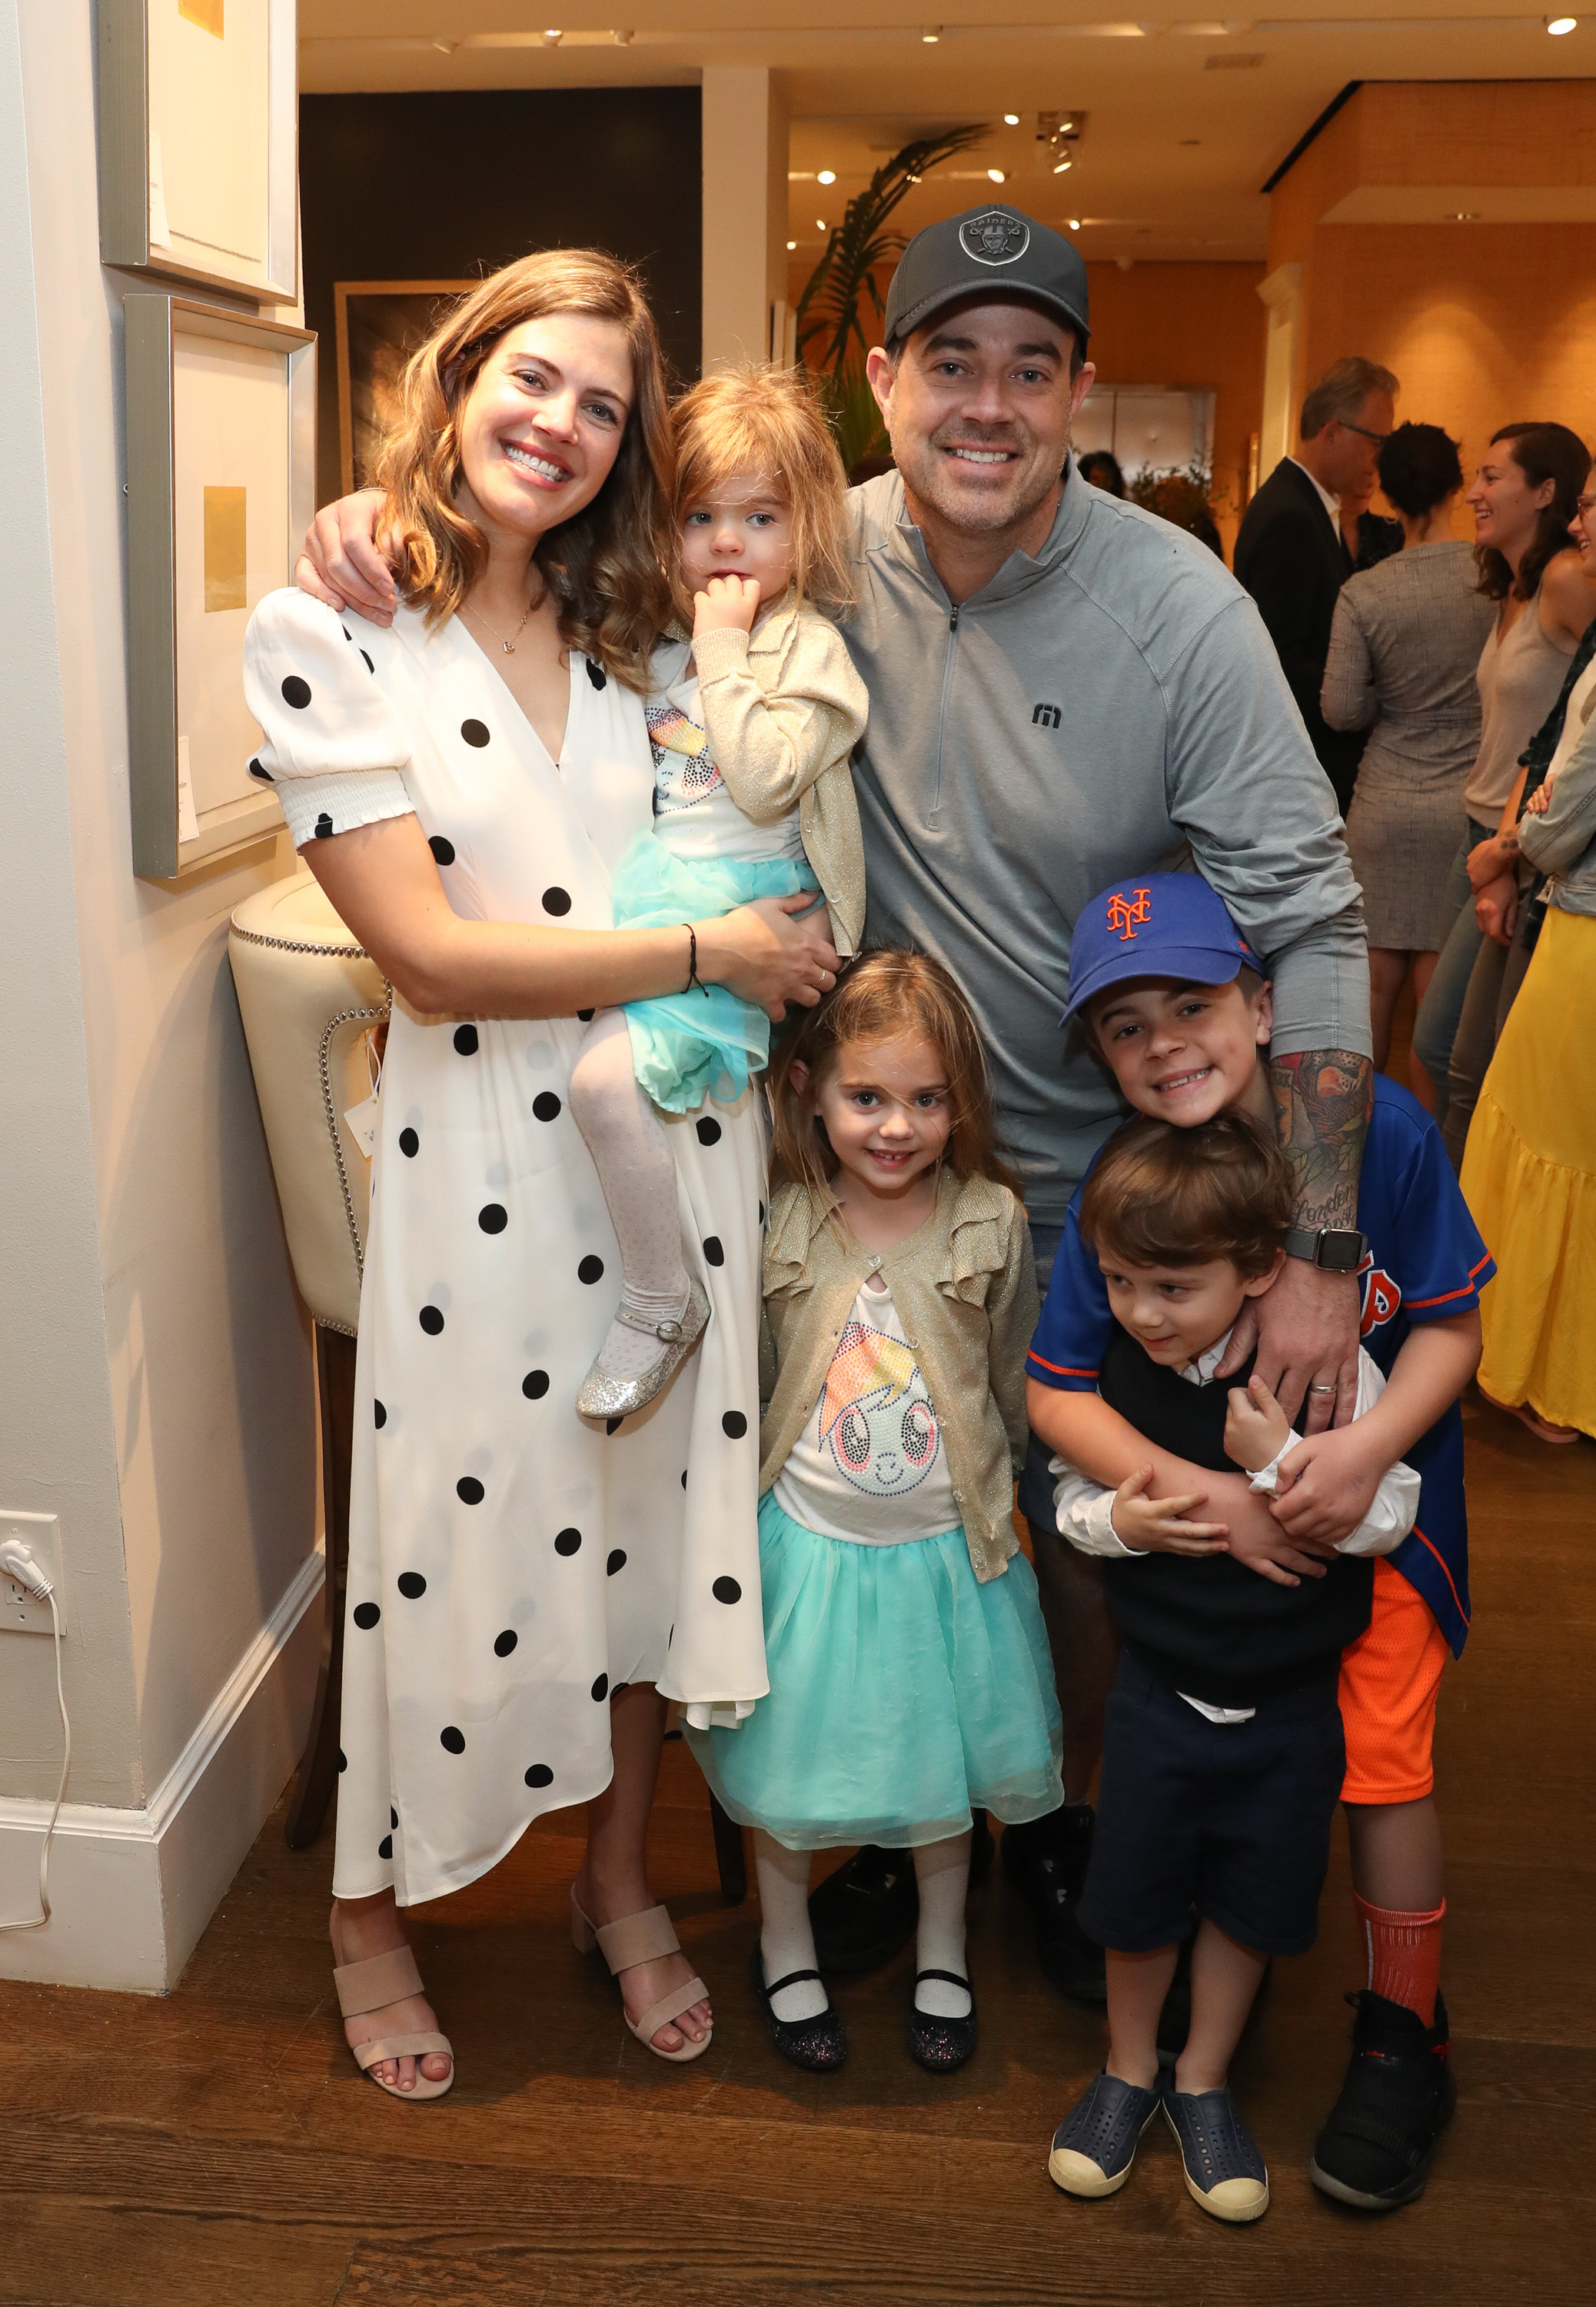 """Siri Daly and Carson Daly, and family, attend """"Siriously Delicious"""" by Siri Daly book launch event at Williams Sonoma Columbus Circle in New York City on April 14, 2018."""